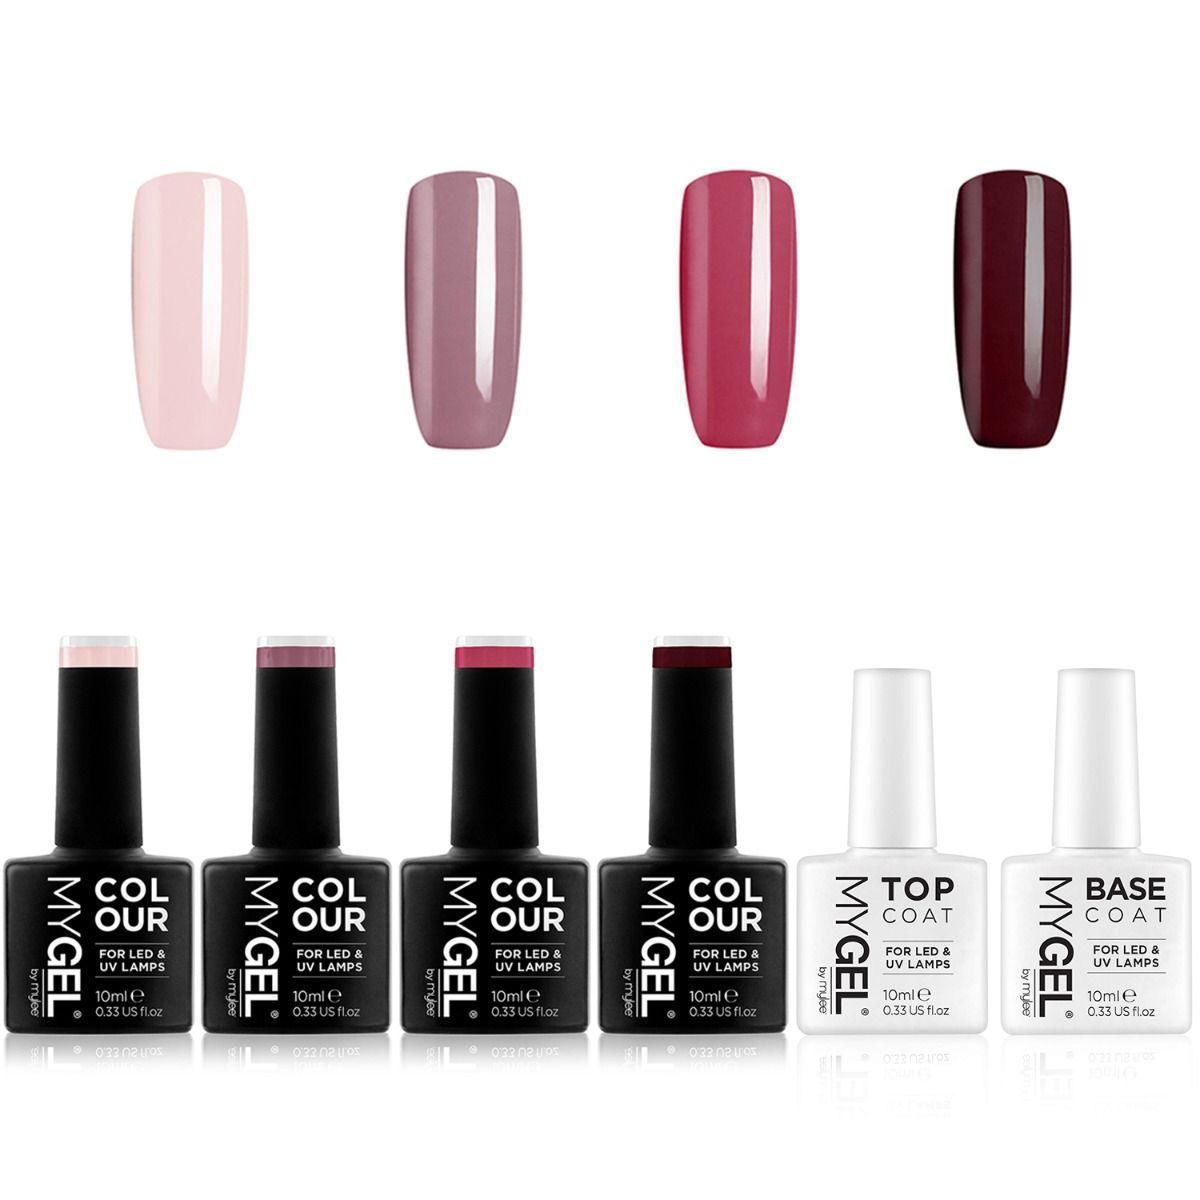 Mylee Mygel Classic Collection 4 Colour Gel Polish Set Gel Nail Polish Colors Gel Nail Colors Gel Polish